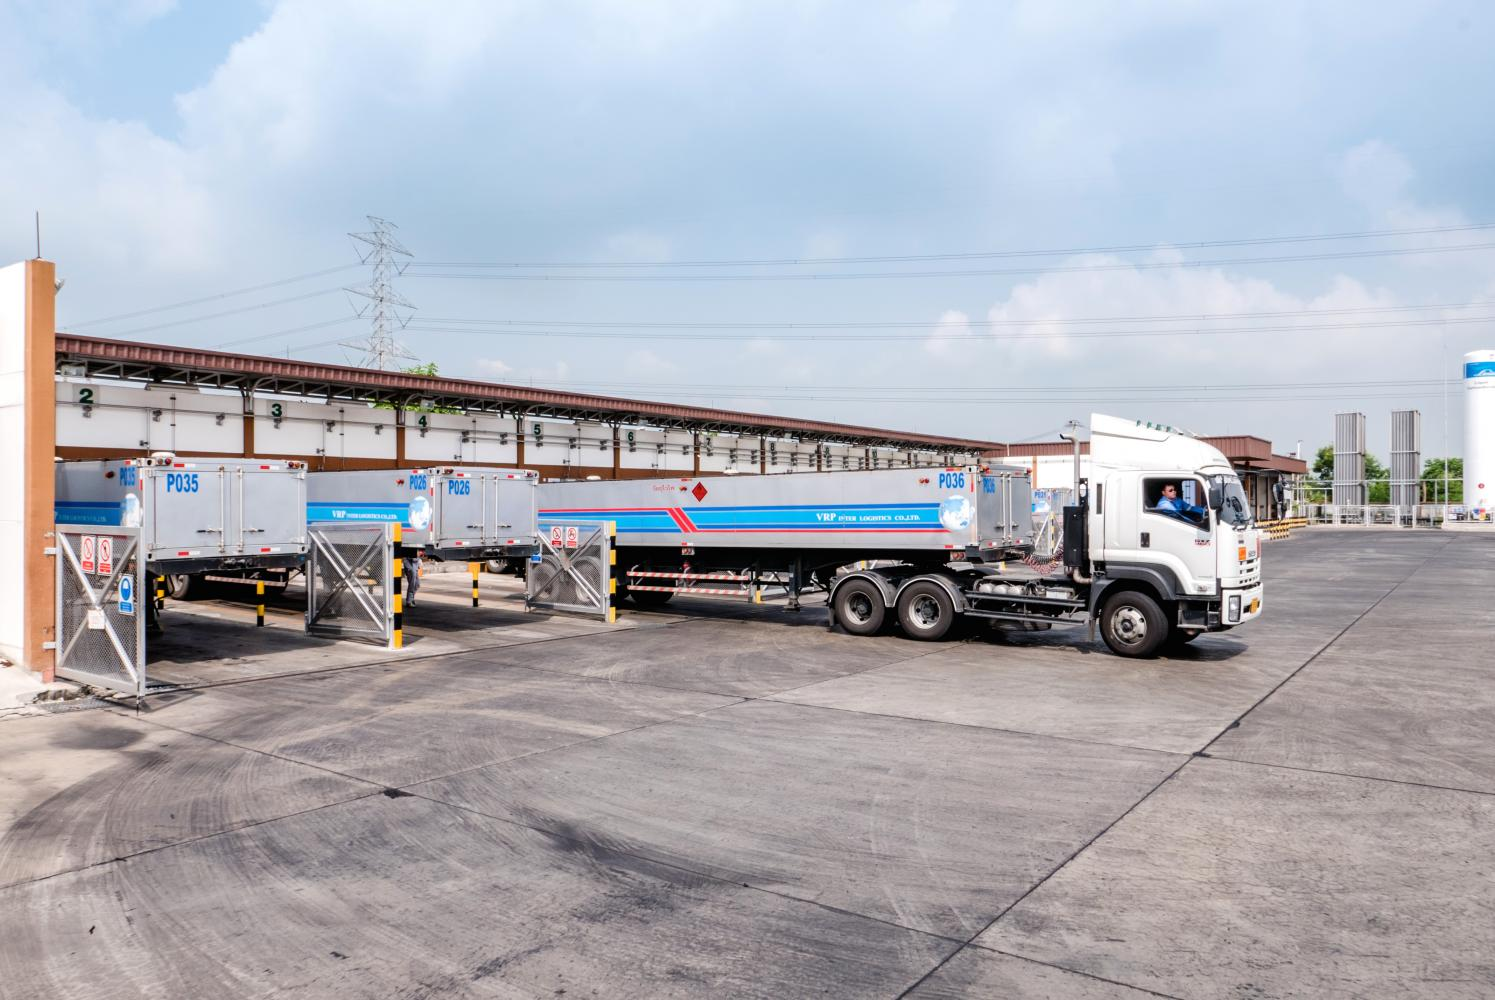 SKE provides service transporting compressed natural gas using trucks. The company plans to allocate capital spending worth more than 300 million baht this year.